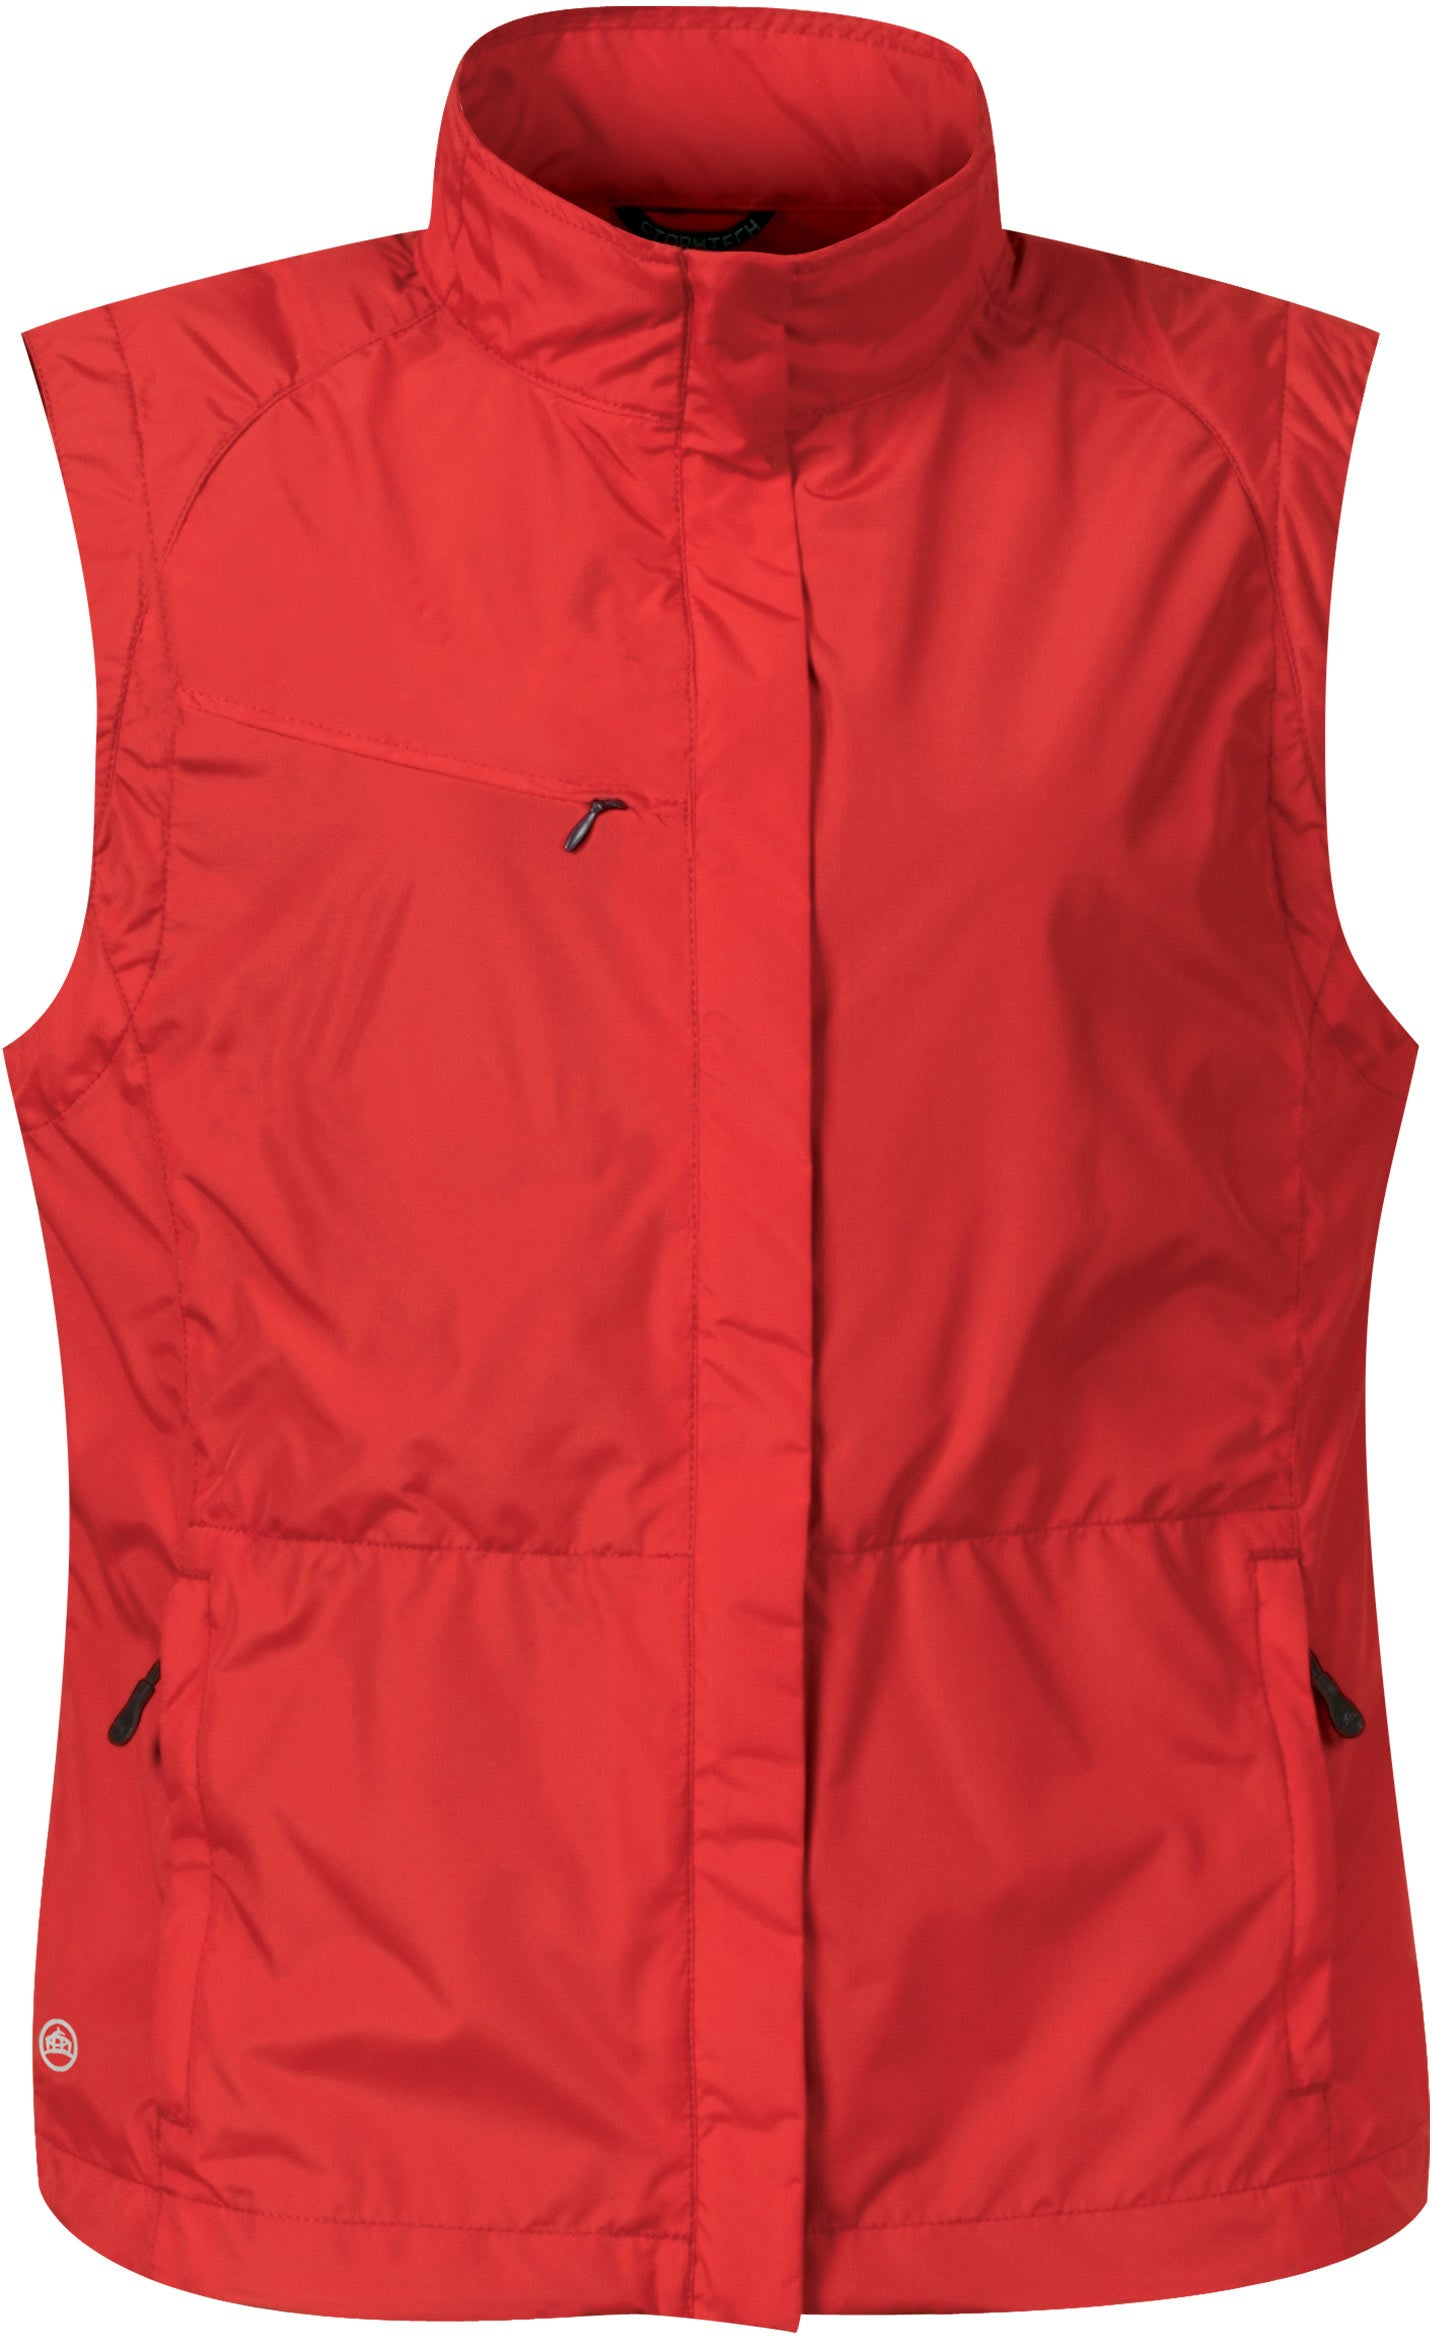 STORMTECH LADIES MICRO LIGHT VEST